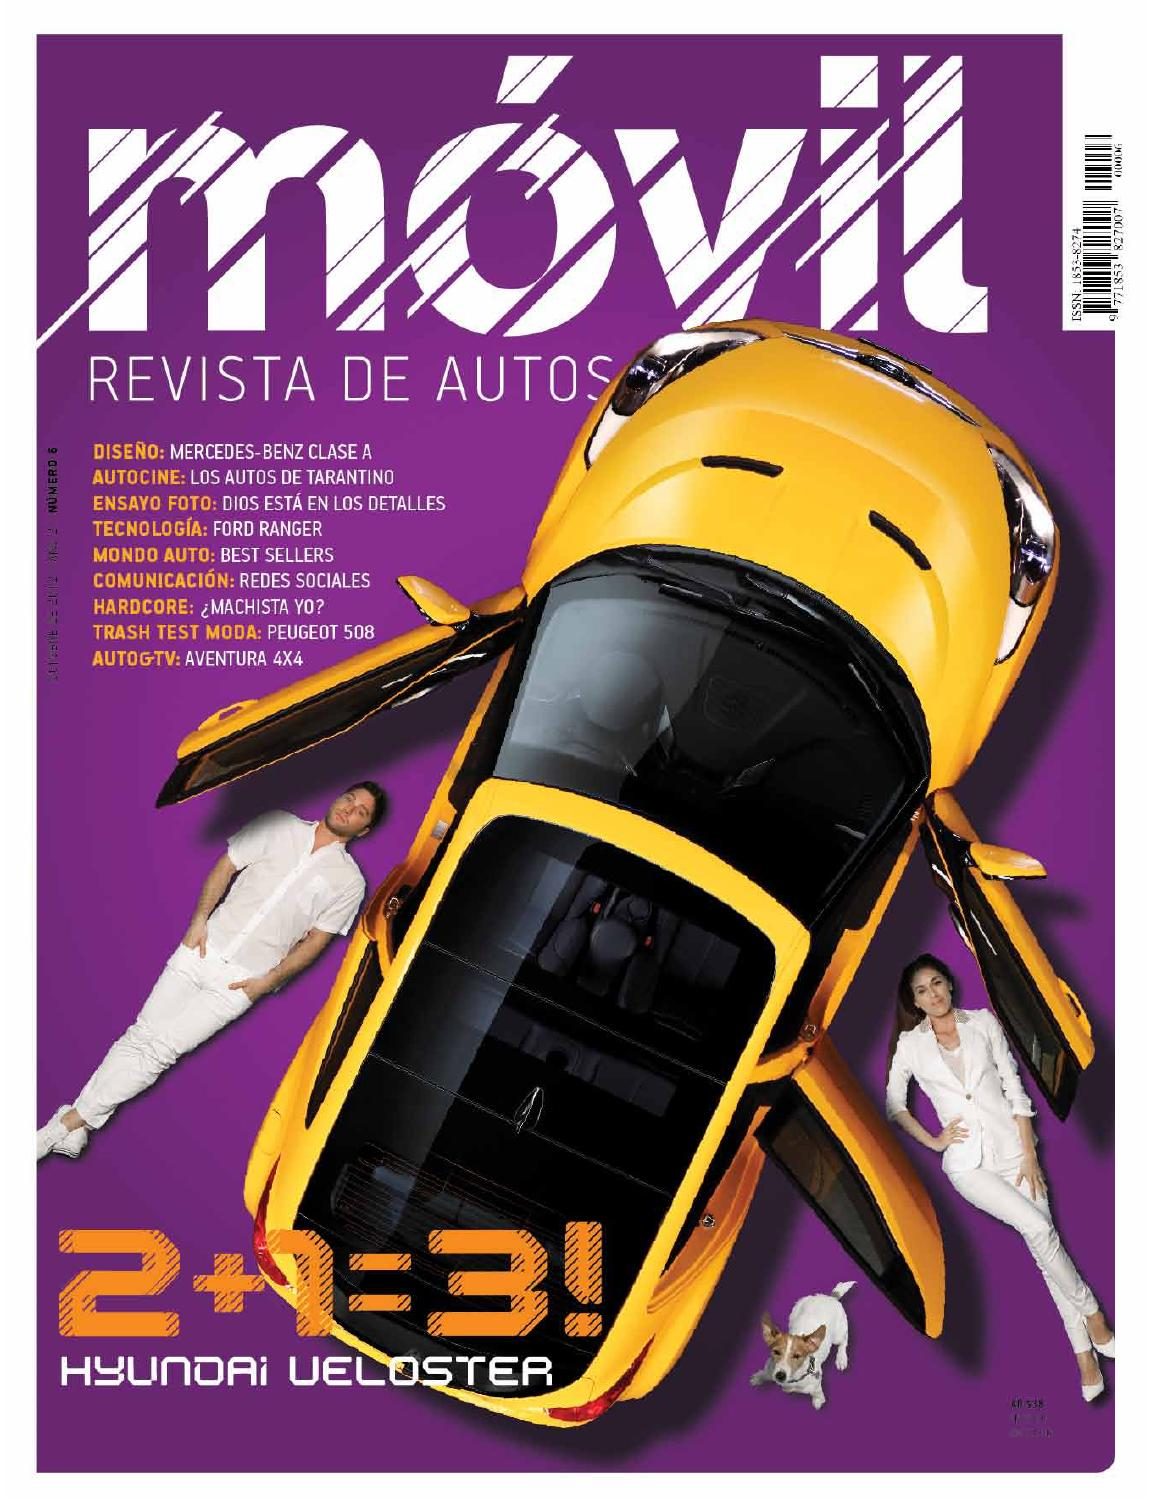 Móvil - Revista de Autos  6 by Revista Móvil - issuu ed43d30d373b